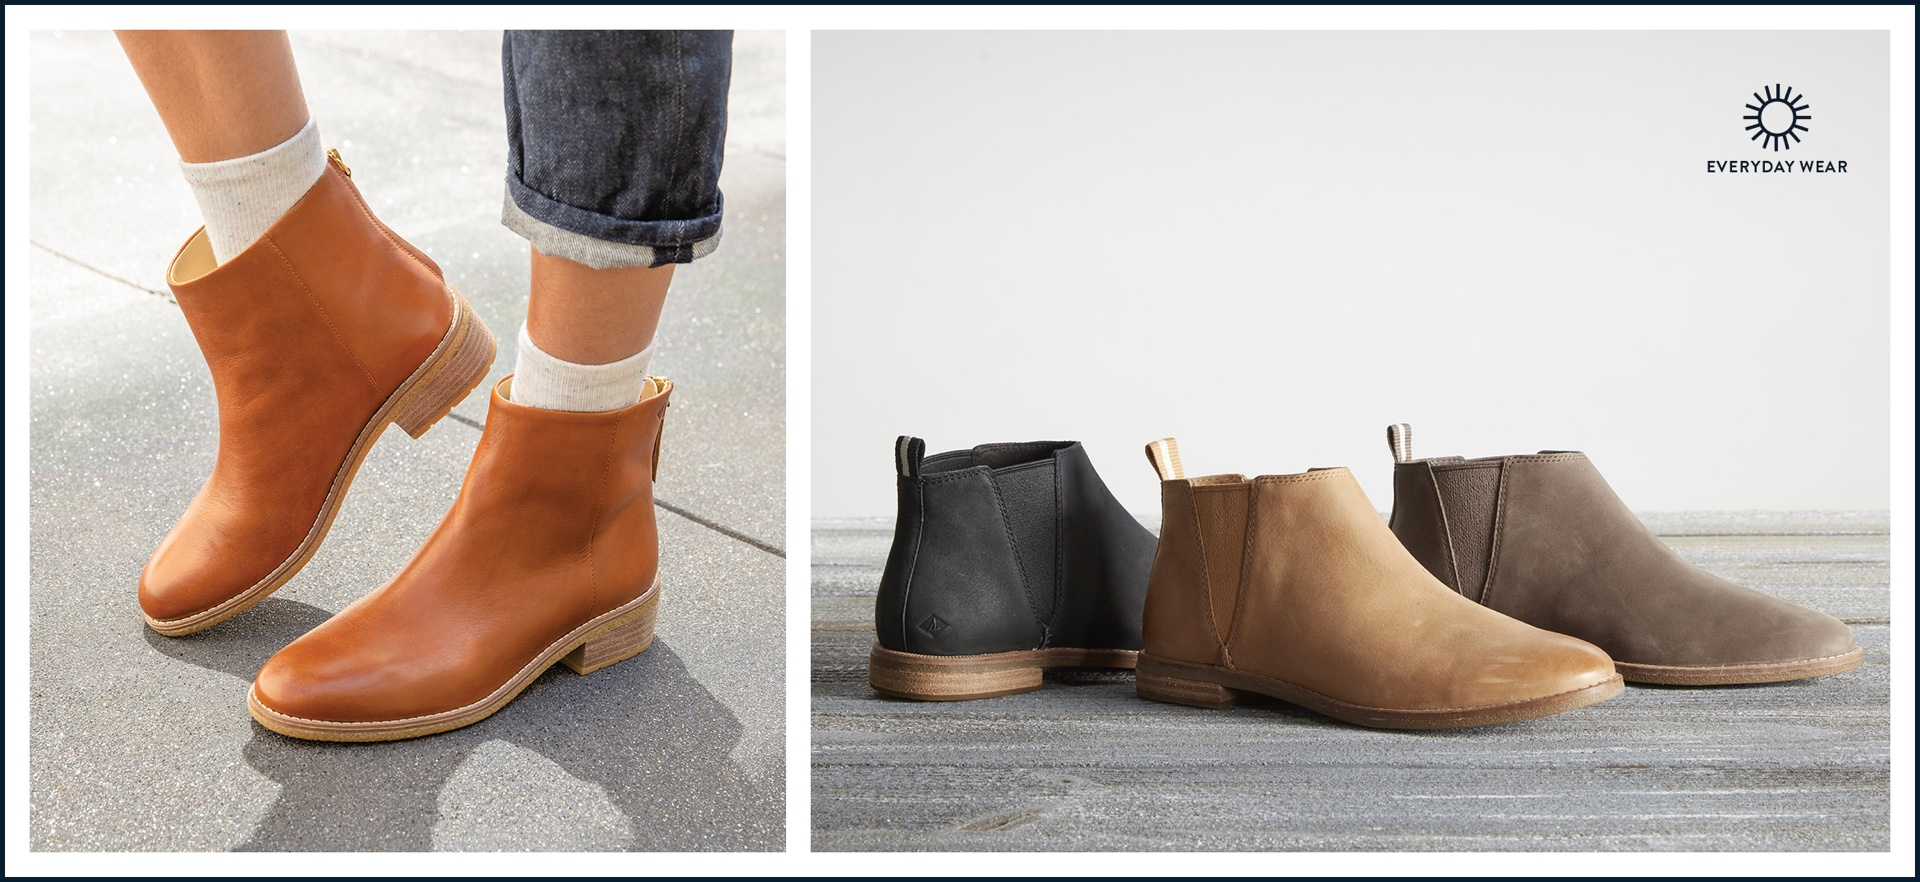 Boots by Sperry: Everyday Wear